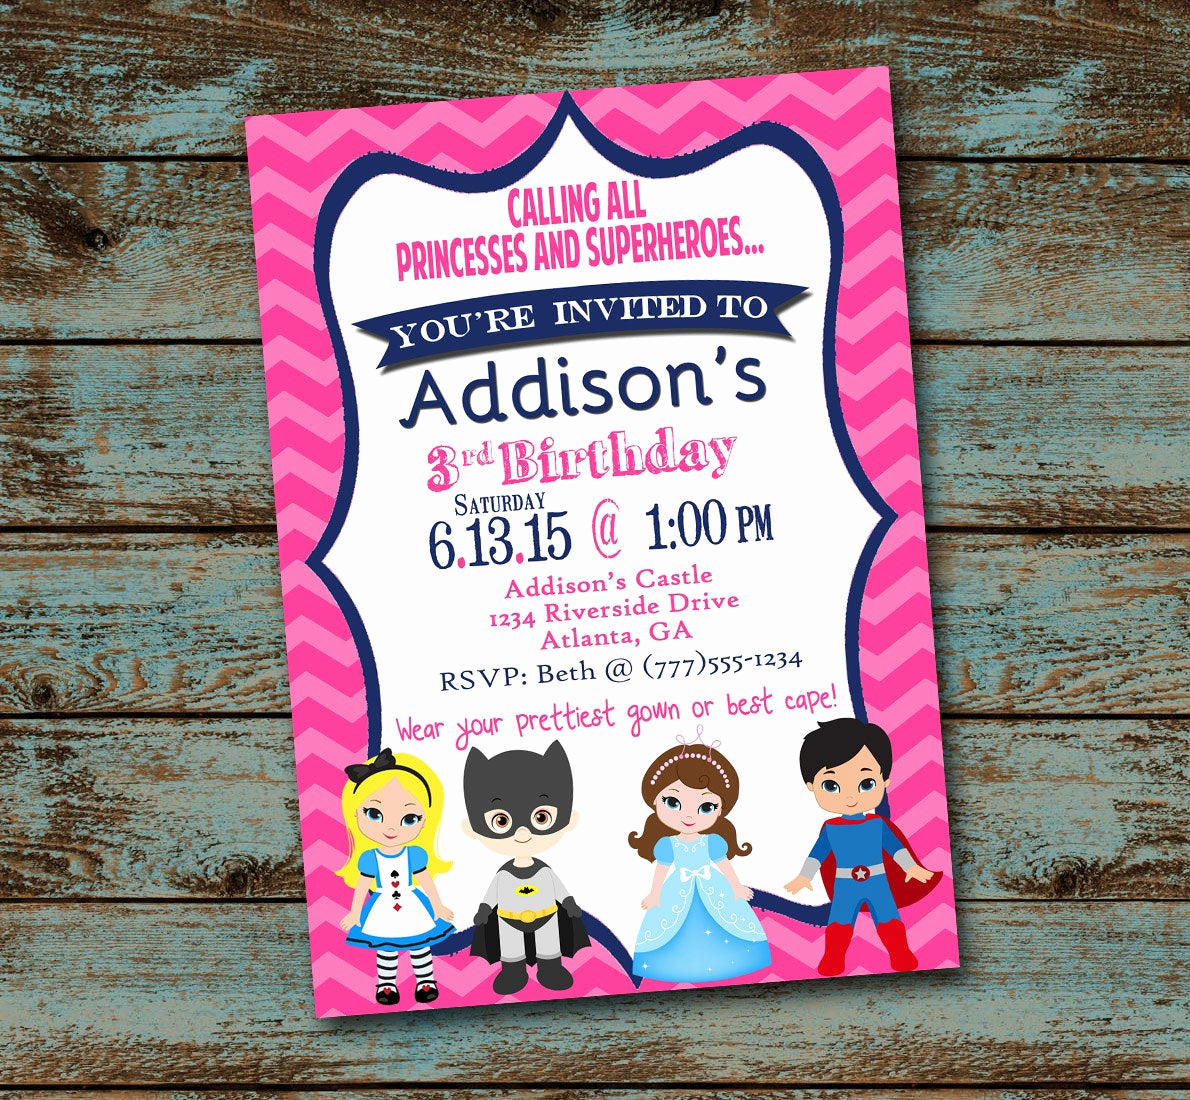 Calling All Superheroes Invitation Best Of Princess and Superhero Birthday Party Invitation Calling All